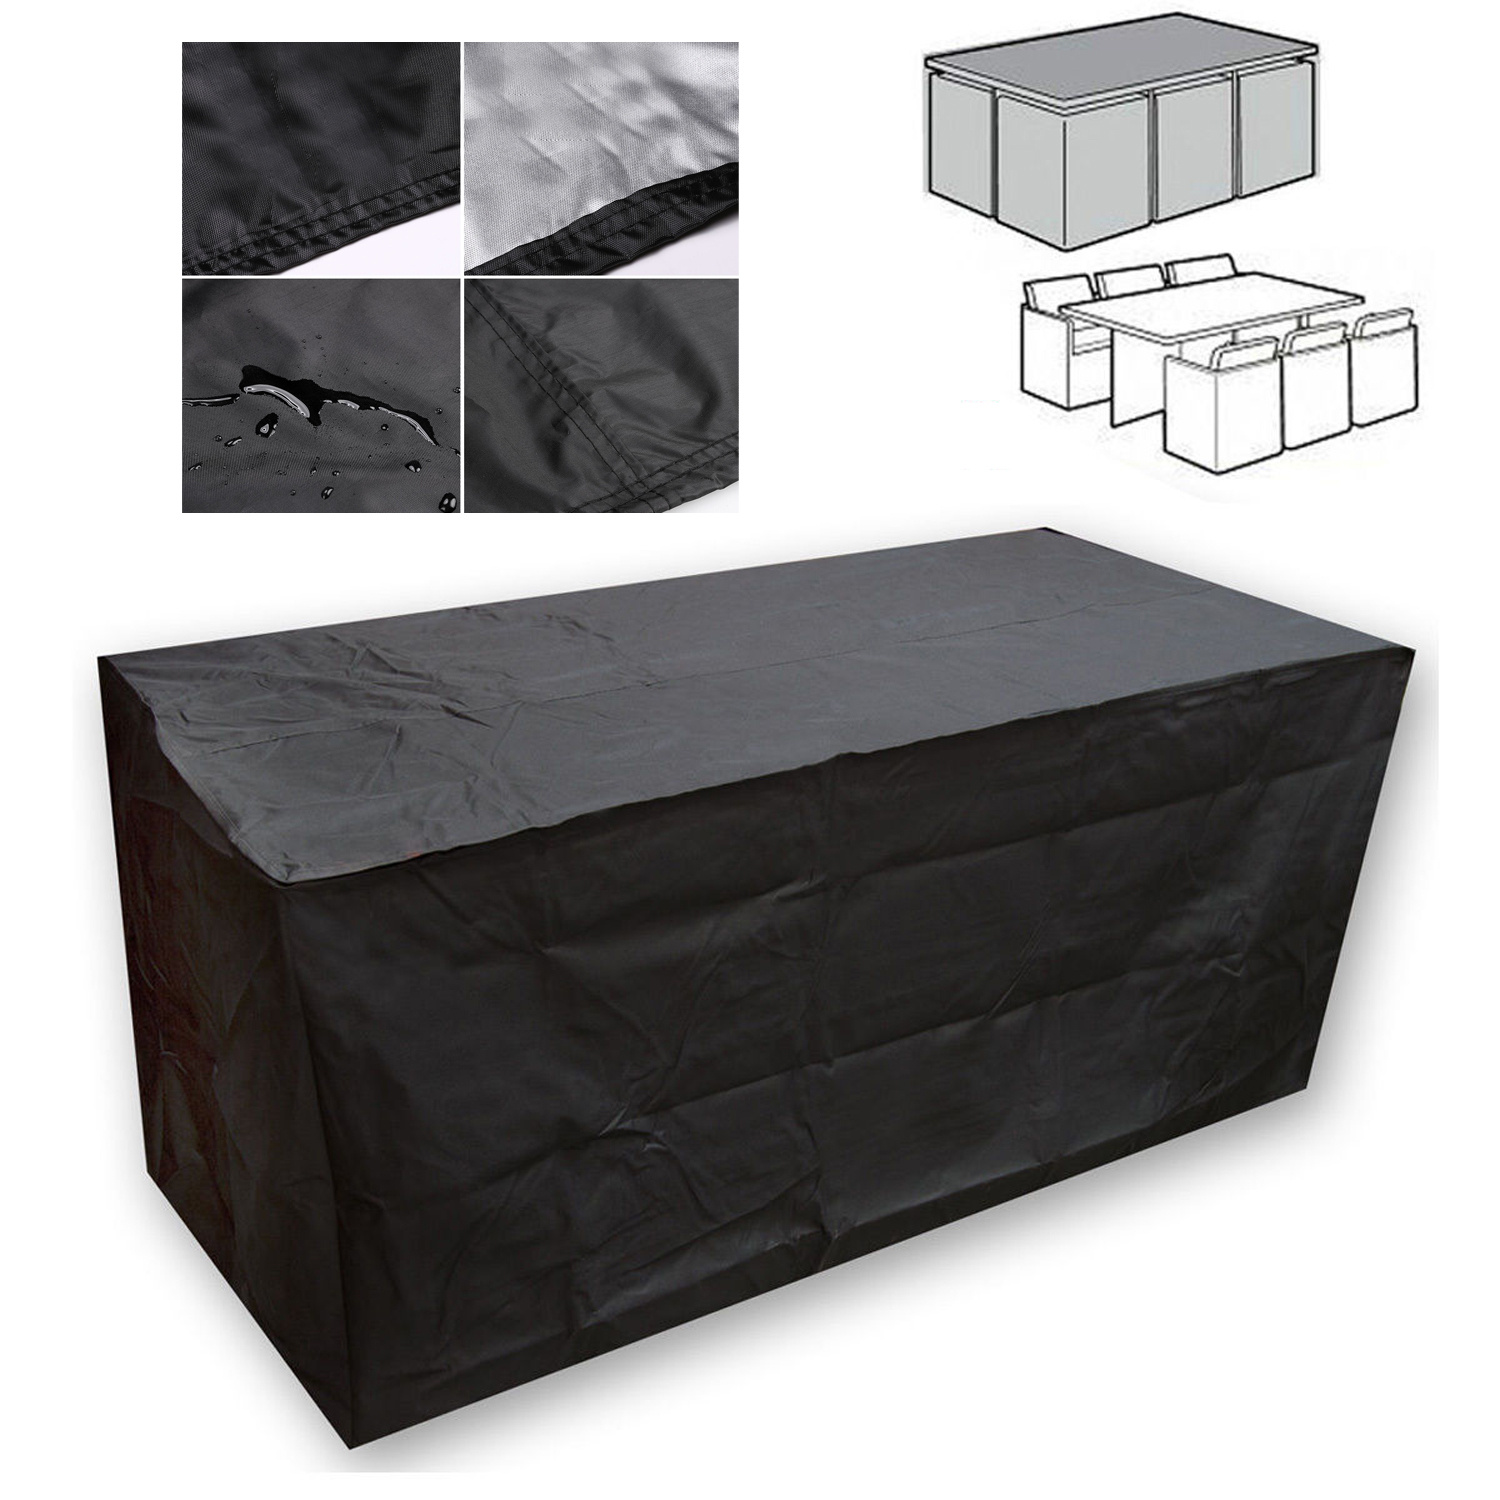 Black Waterproof Patio Furniture Cover for Outdoor Garden Rattan Table Chair Set